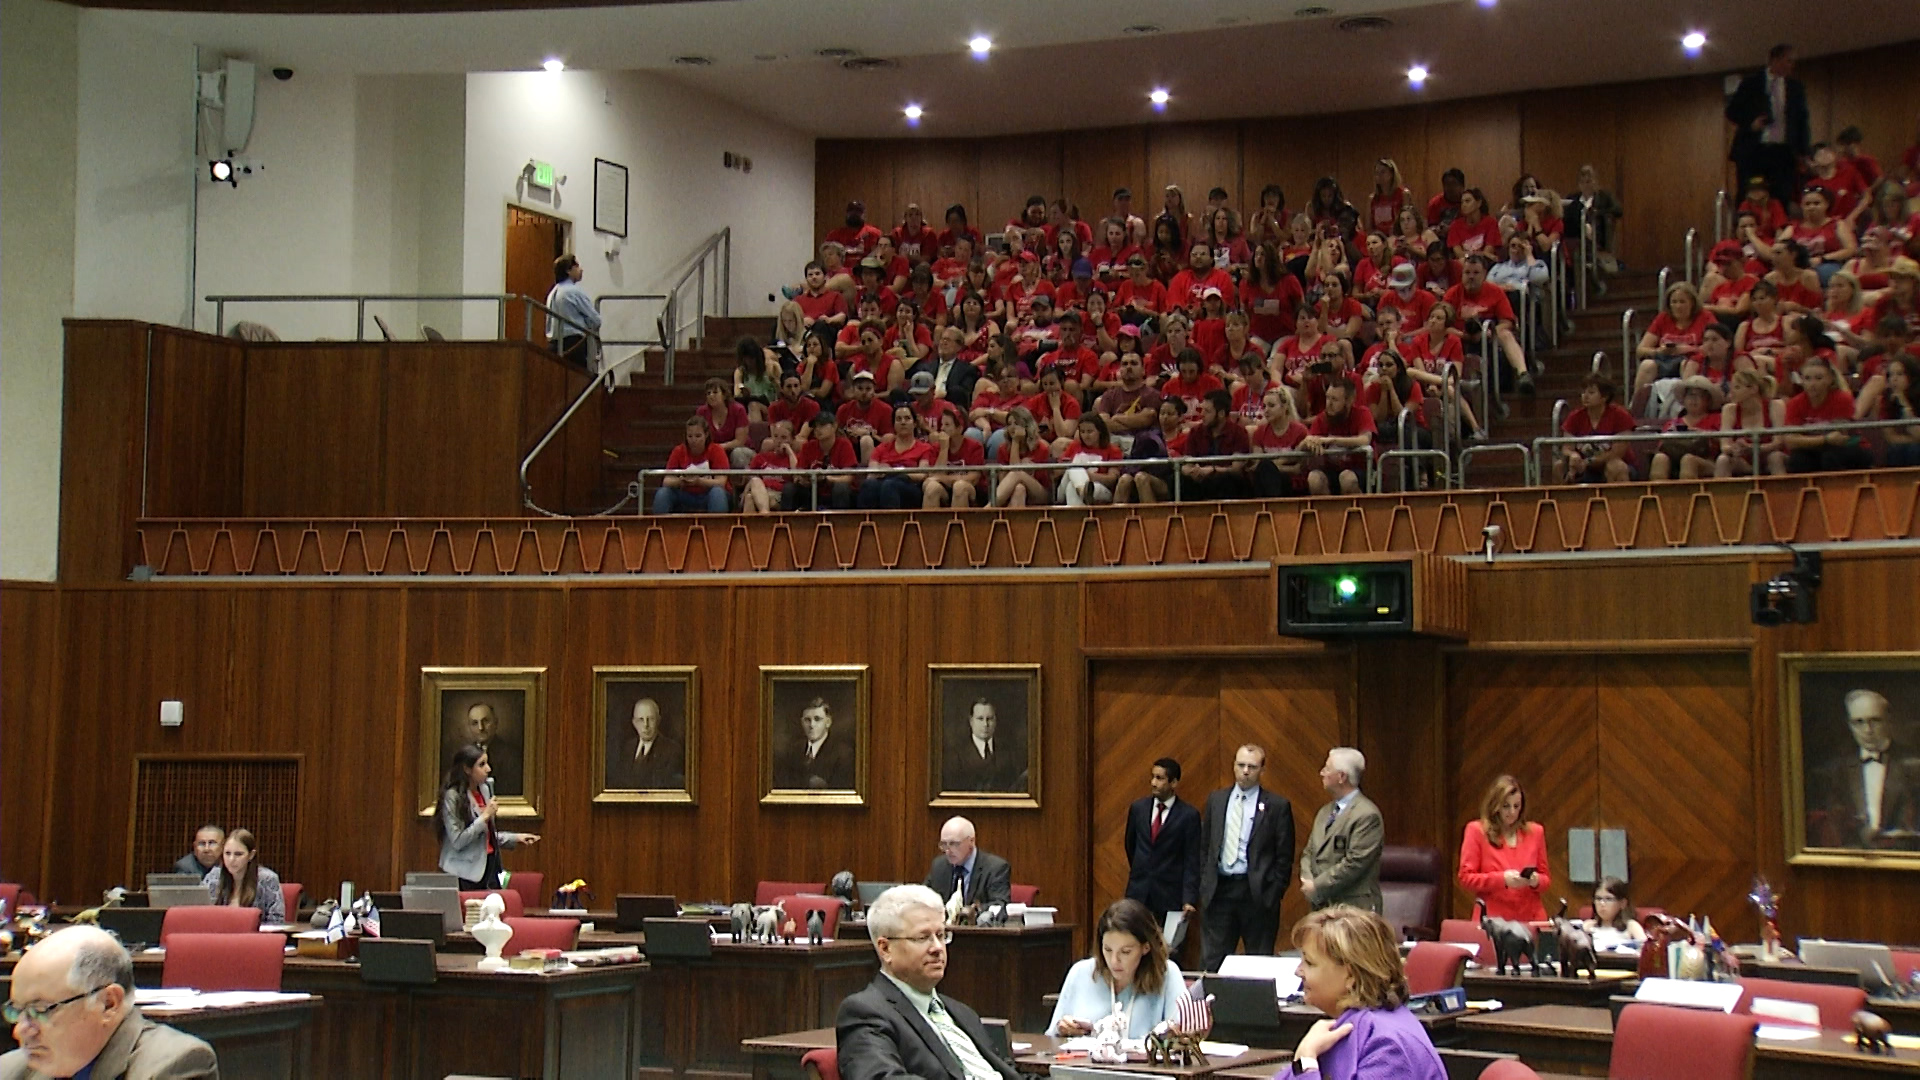 Teachers attending meeting at the Capitol